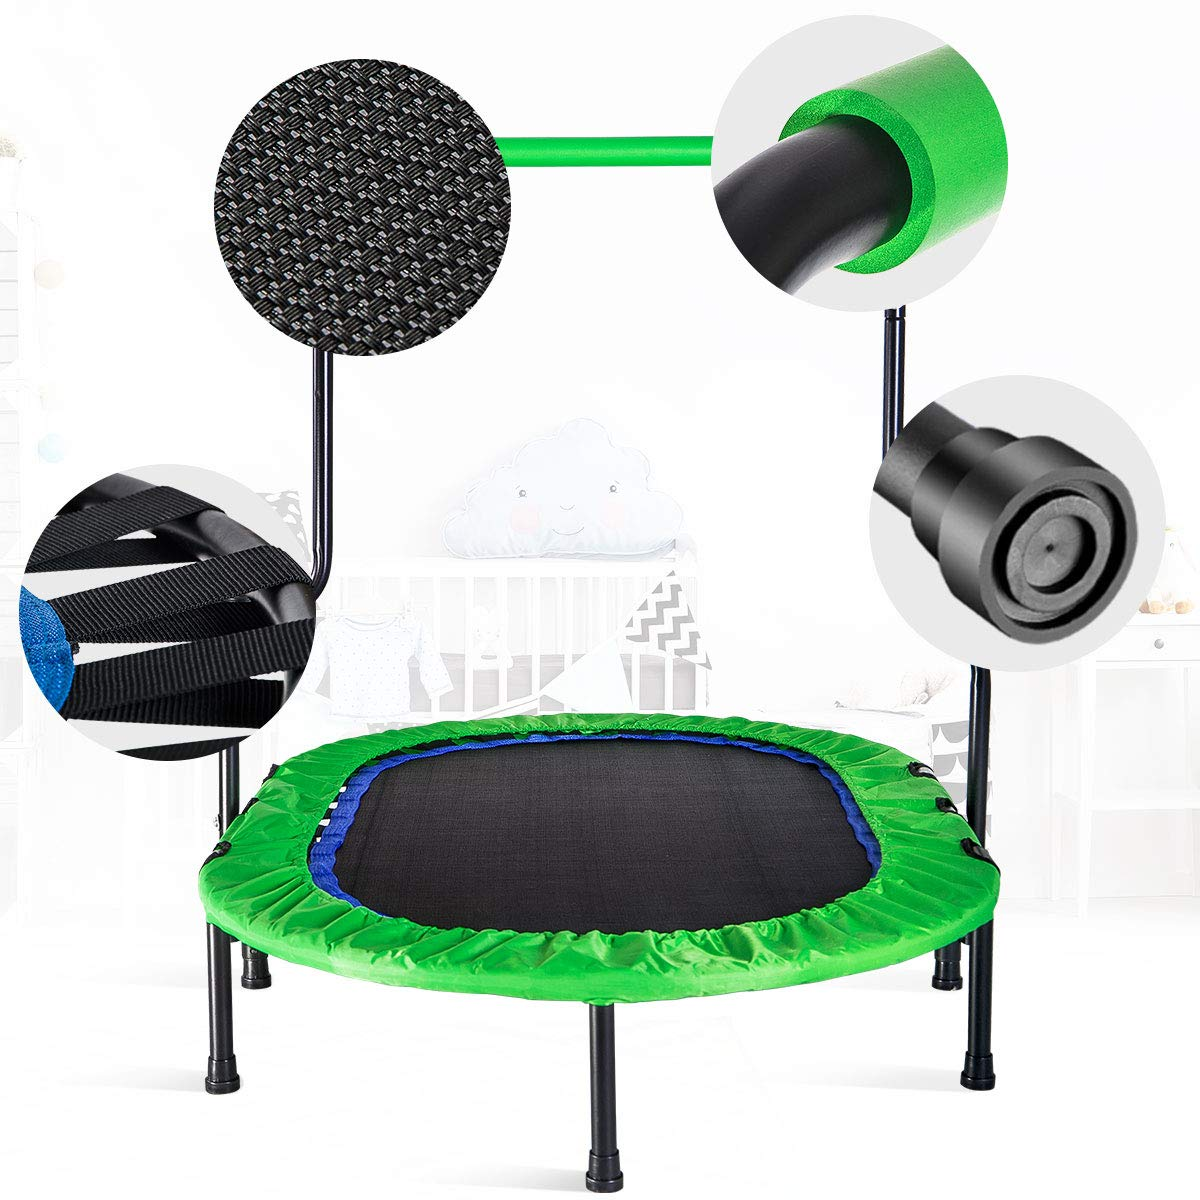 Merax Mini Rebounder Trampoline with Handle for Two Kids, Parent-Child Trampoline (Green) by Merax (Image #4)